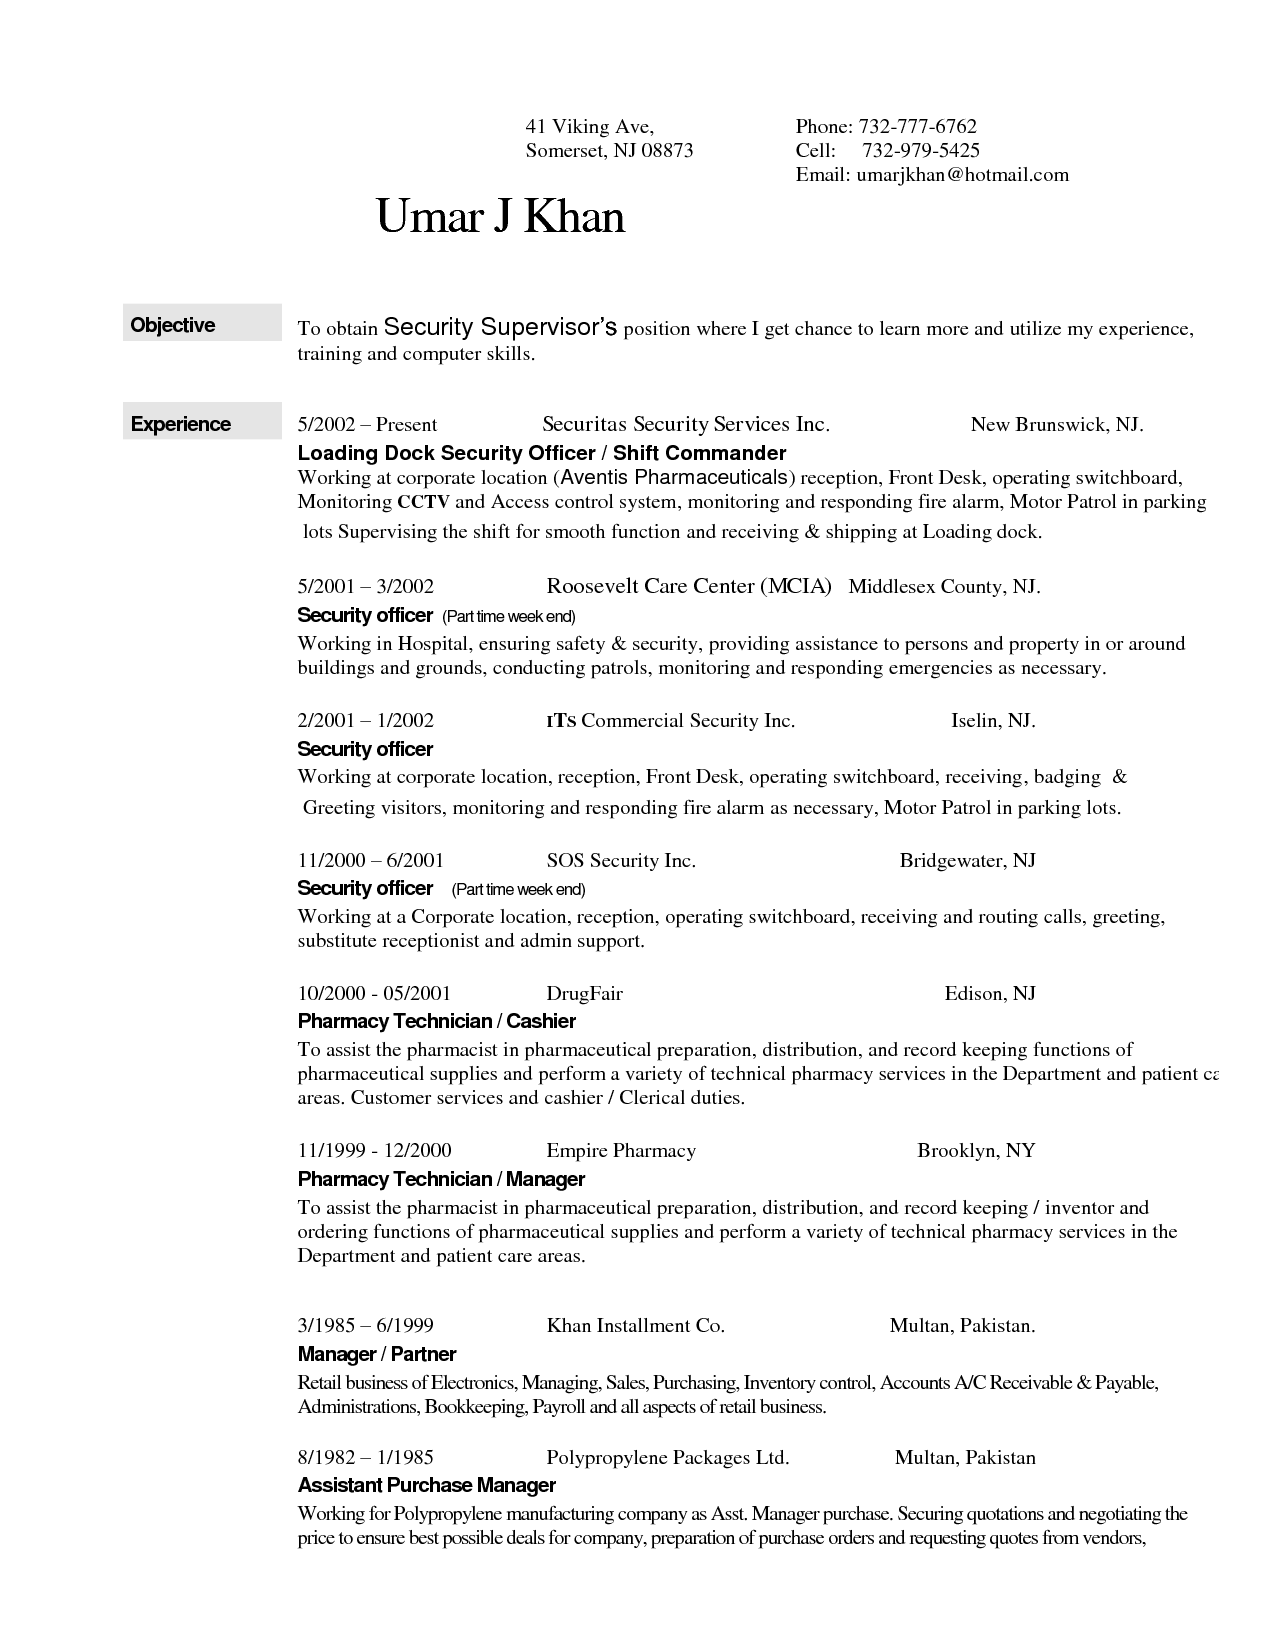 Resume Objective For Security Job